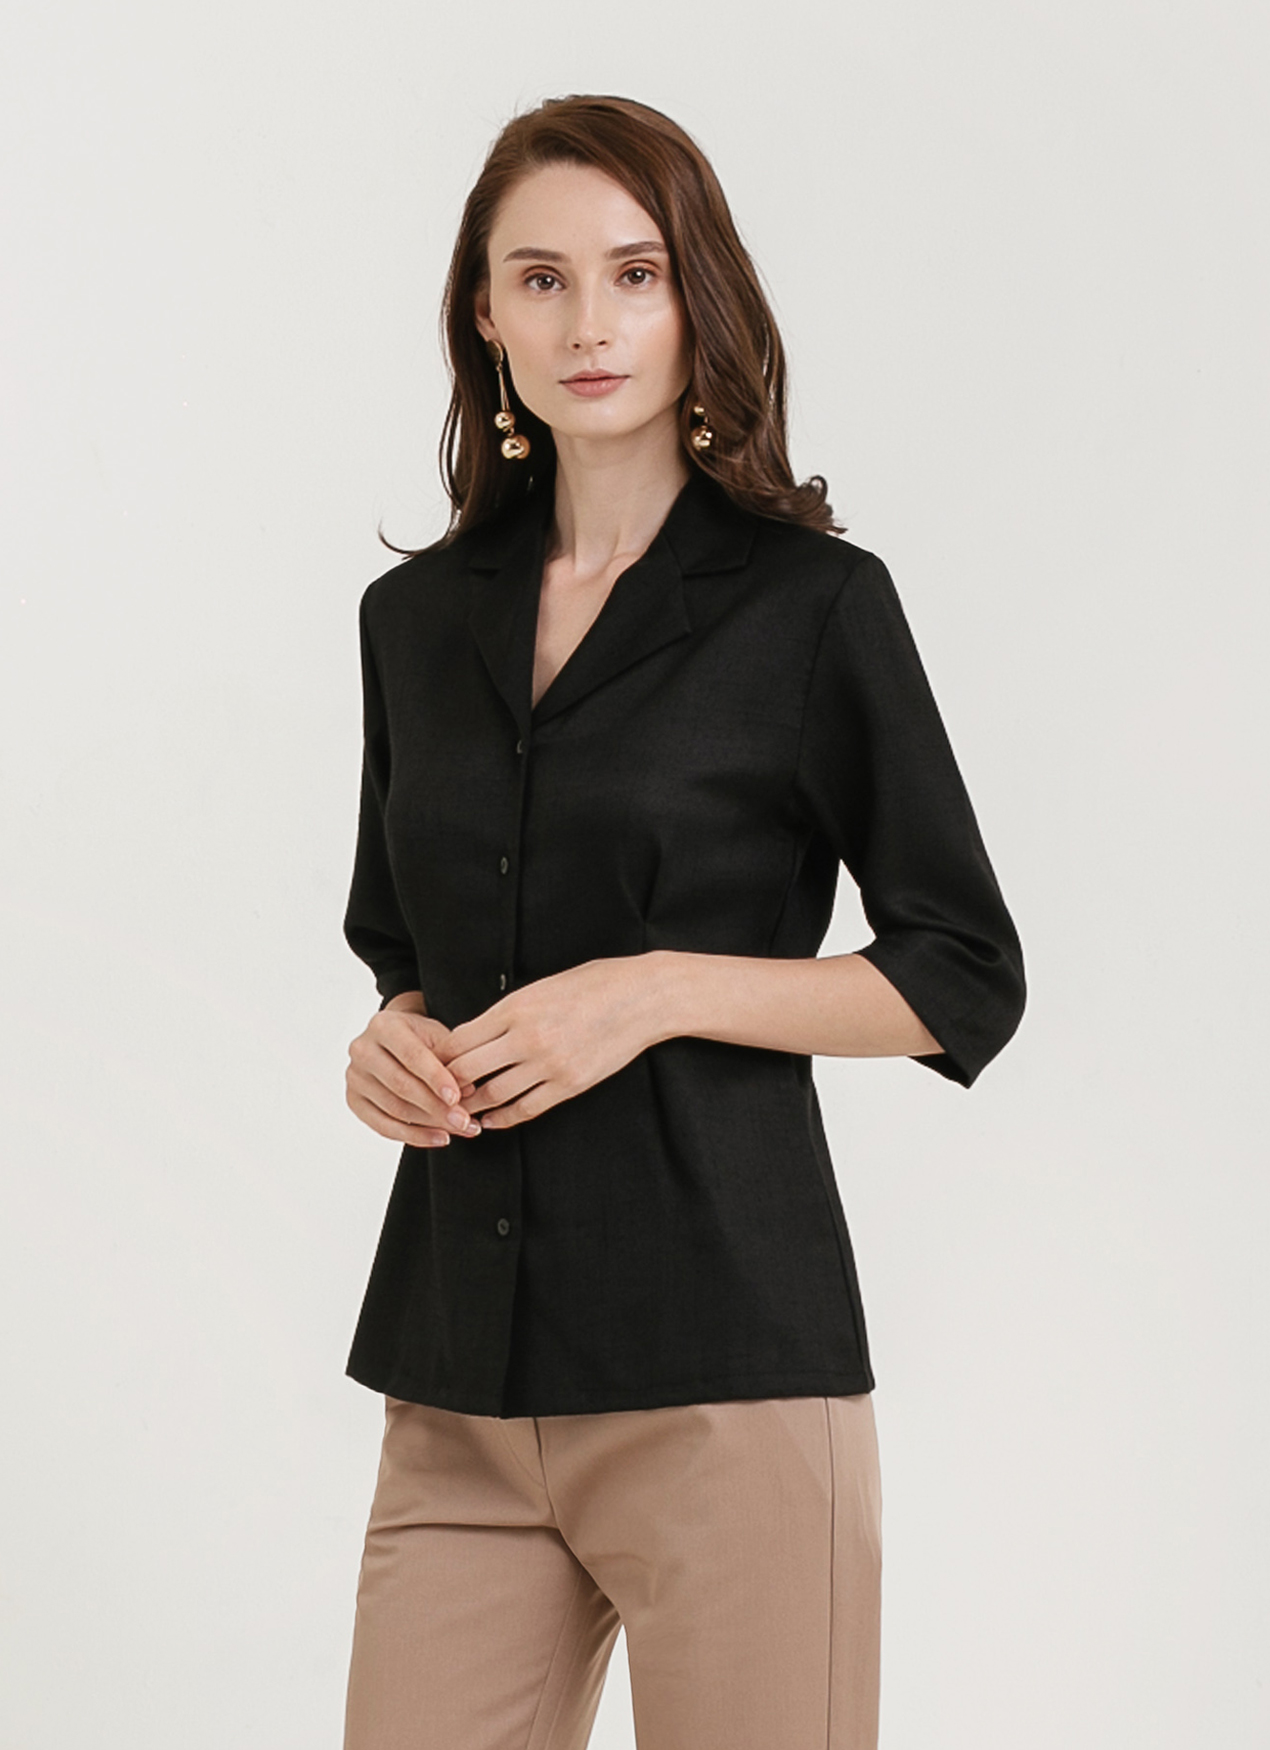 CLOTH INC Linen Collar Shirt - Black